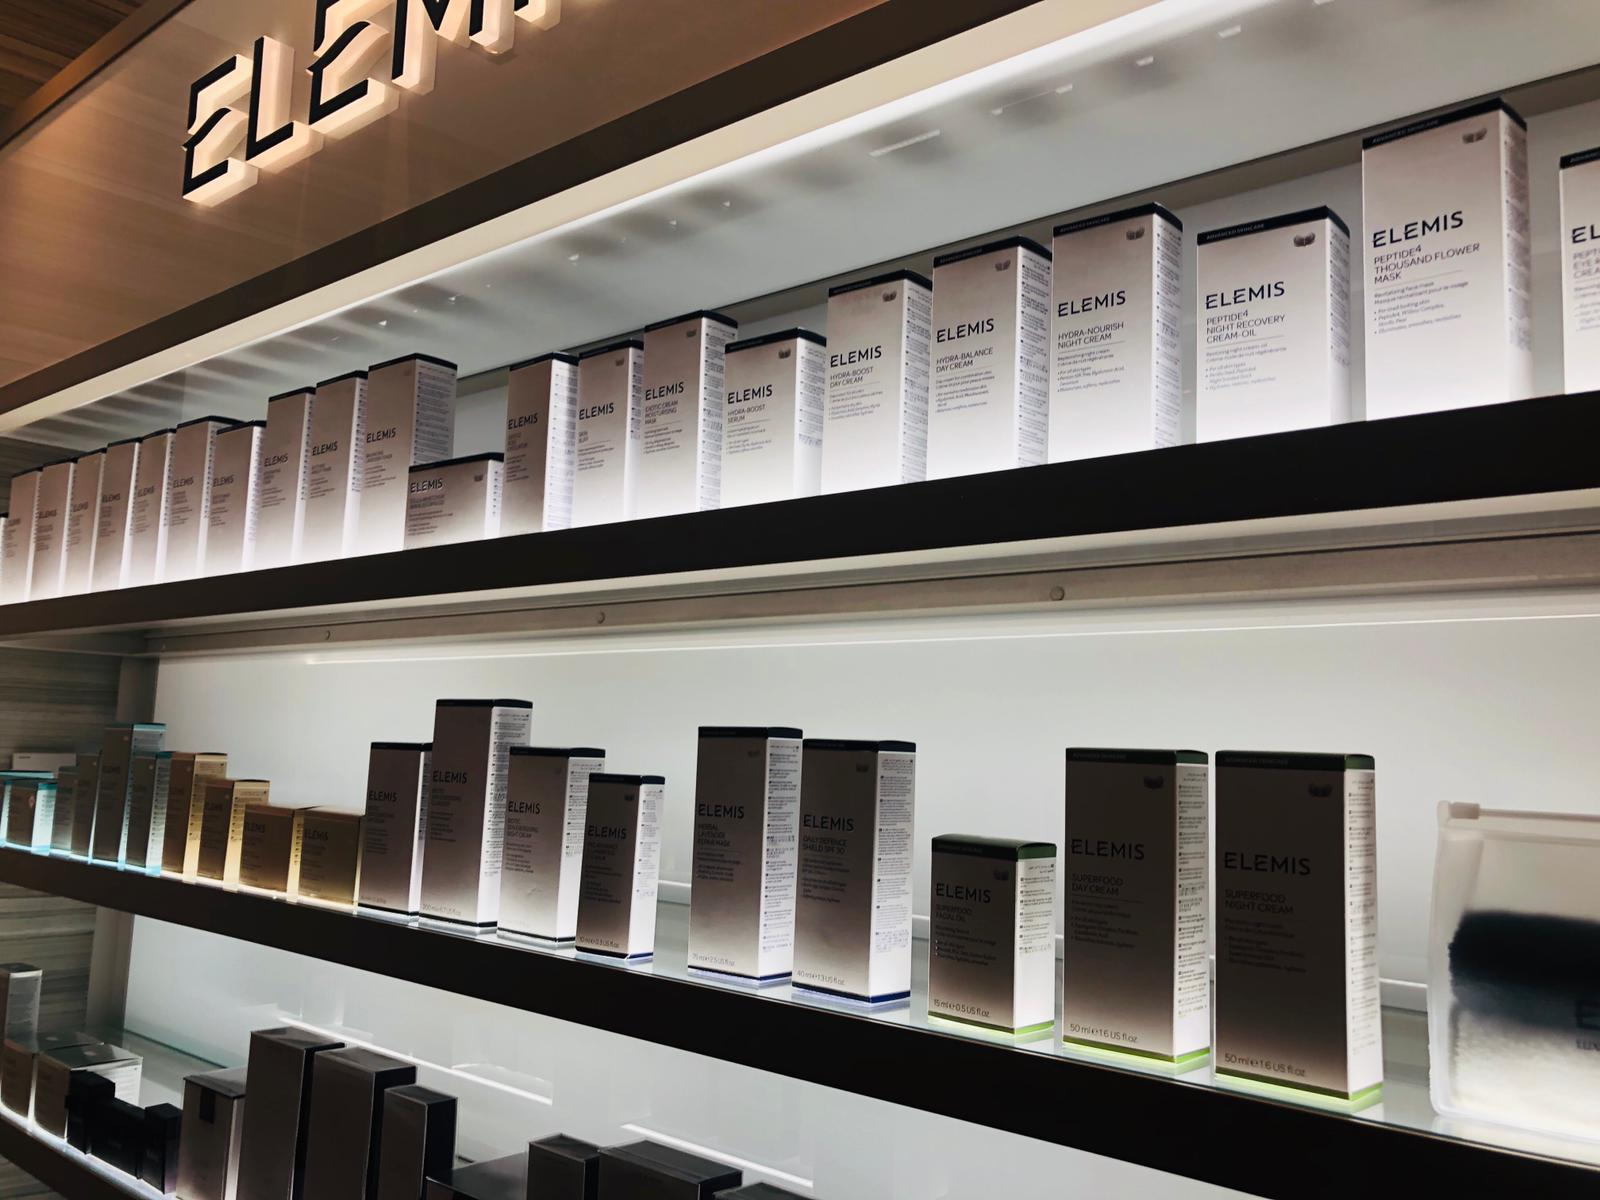 Elemis skin analysis event